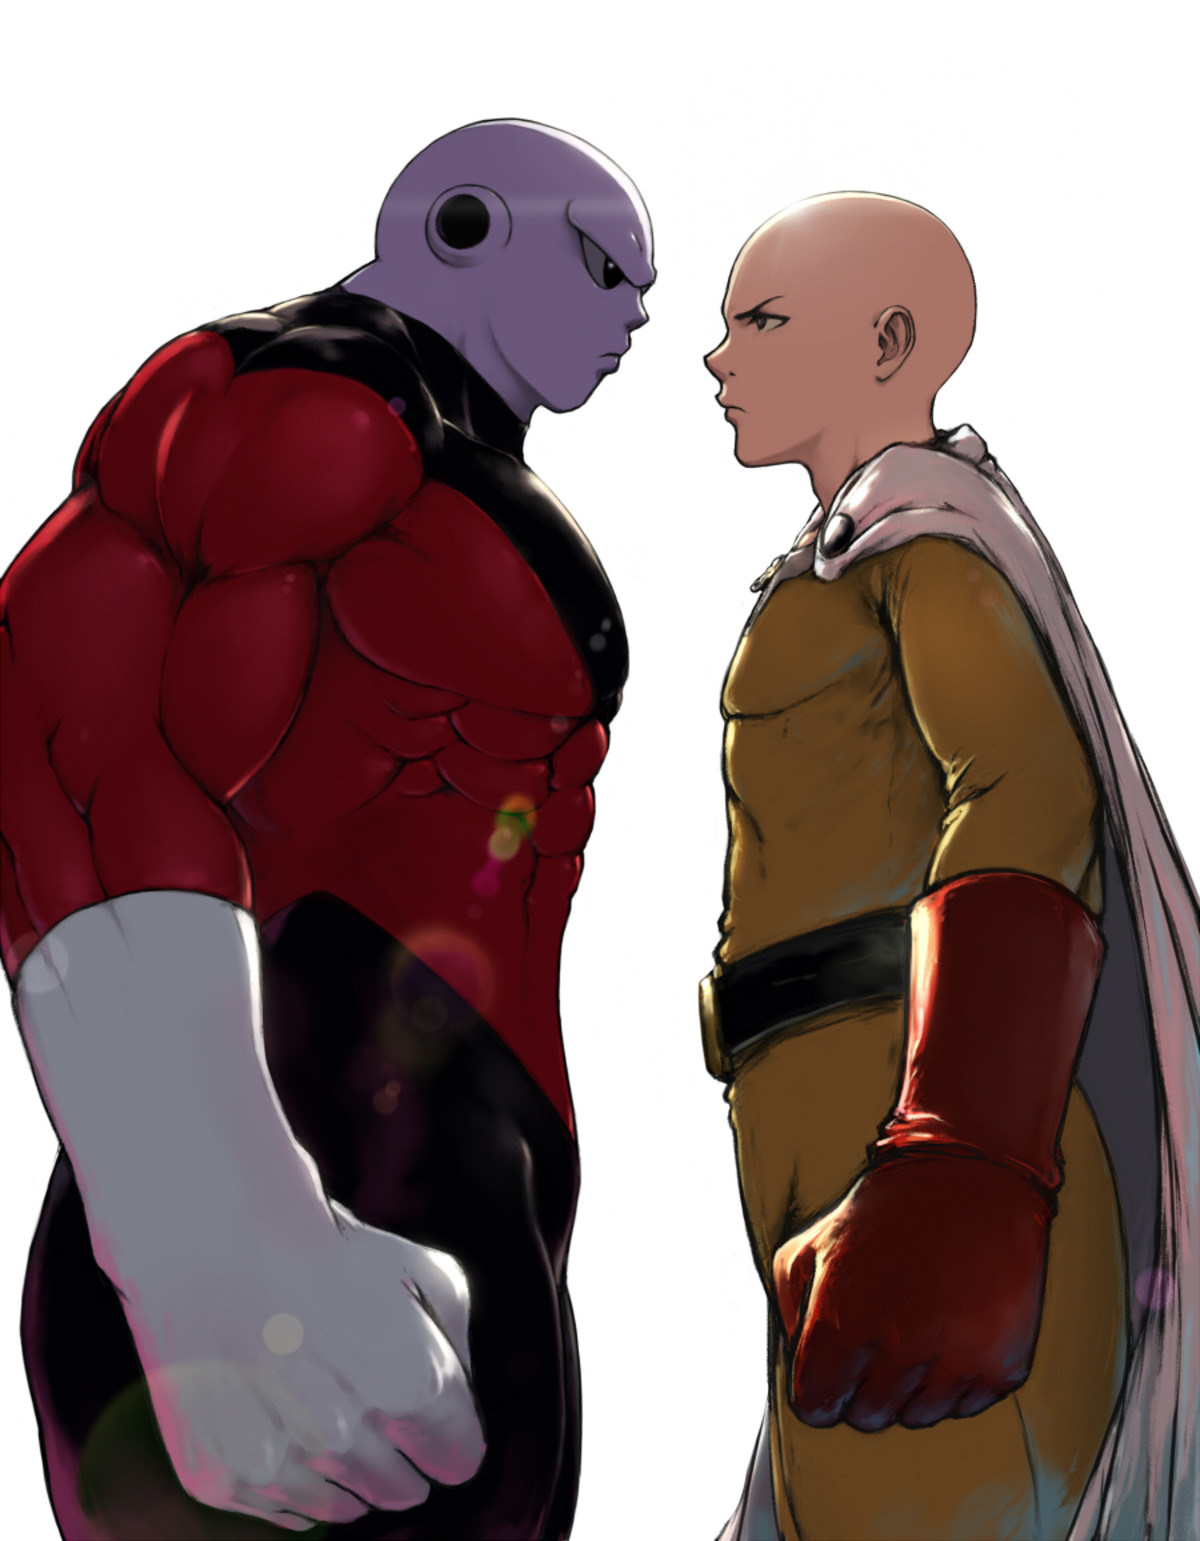 Awesome Art, But Jiren Would Lose. .. Yeeeeah, Saitama would wreck him. Jiren may survive a few of Saitama's hits, but it wouldn't be much more then that.